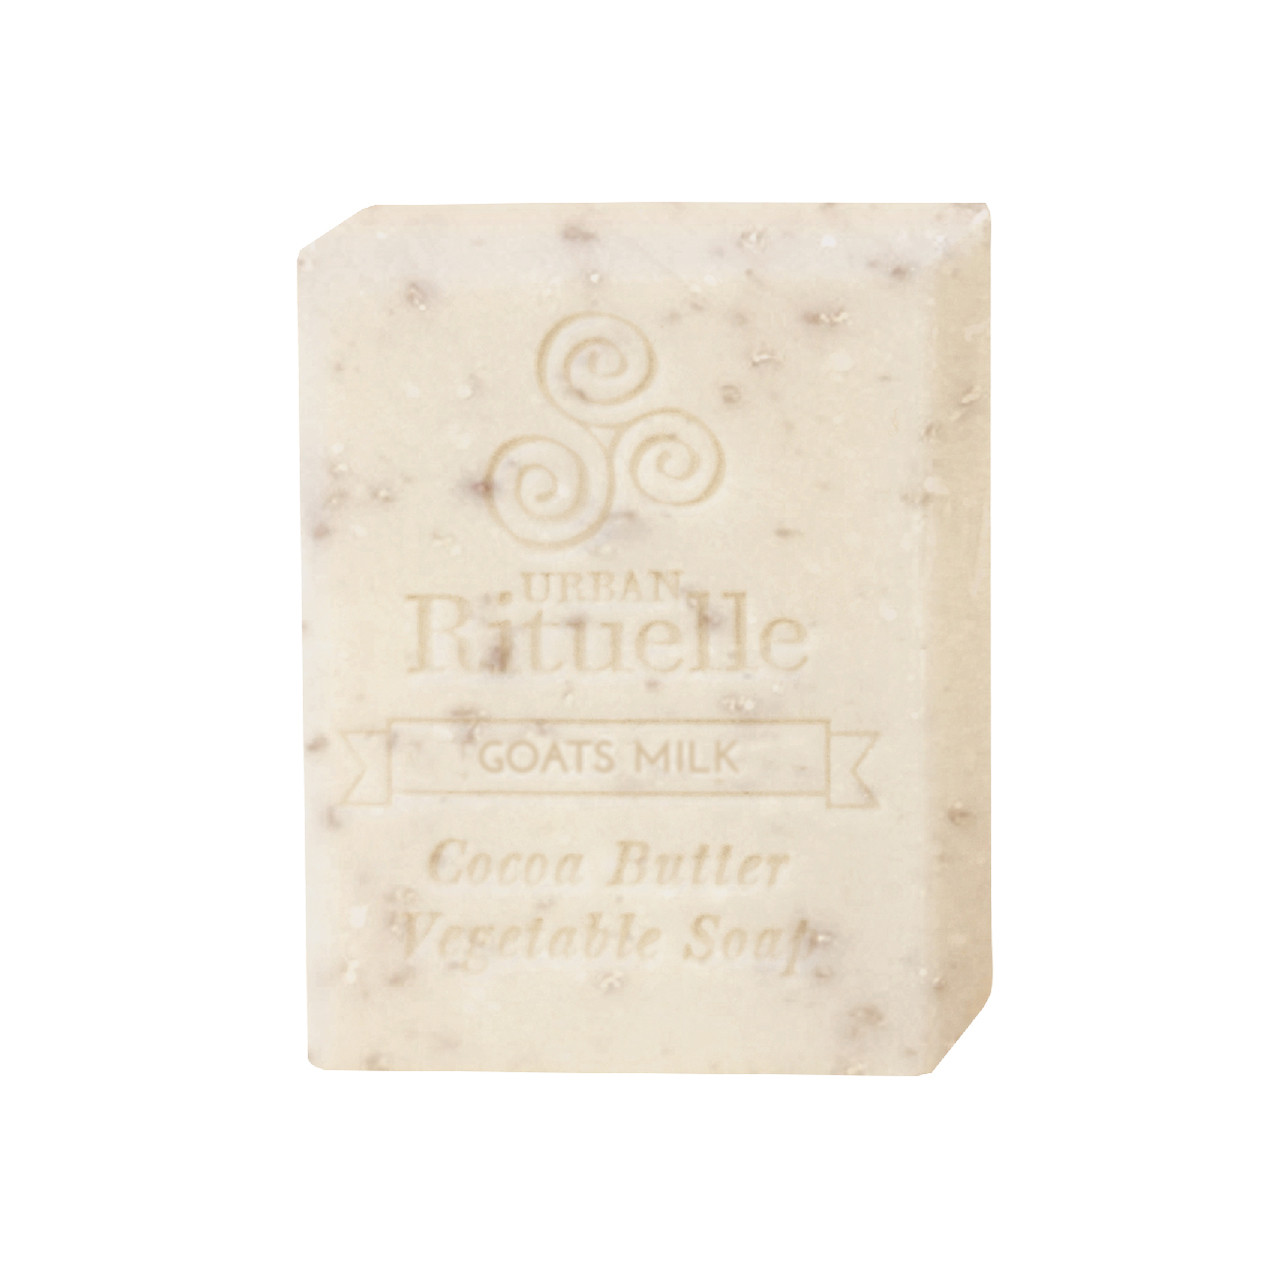 Organic Cocoa Butter Vegetable Soap - Goats Milk - Urban Rituelle